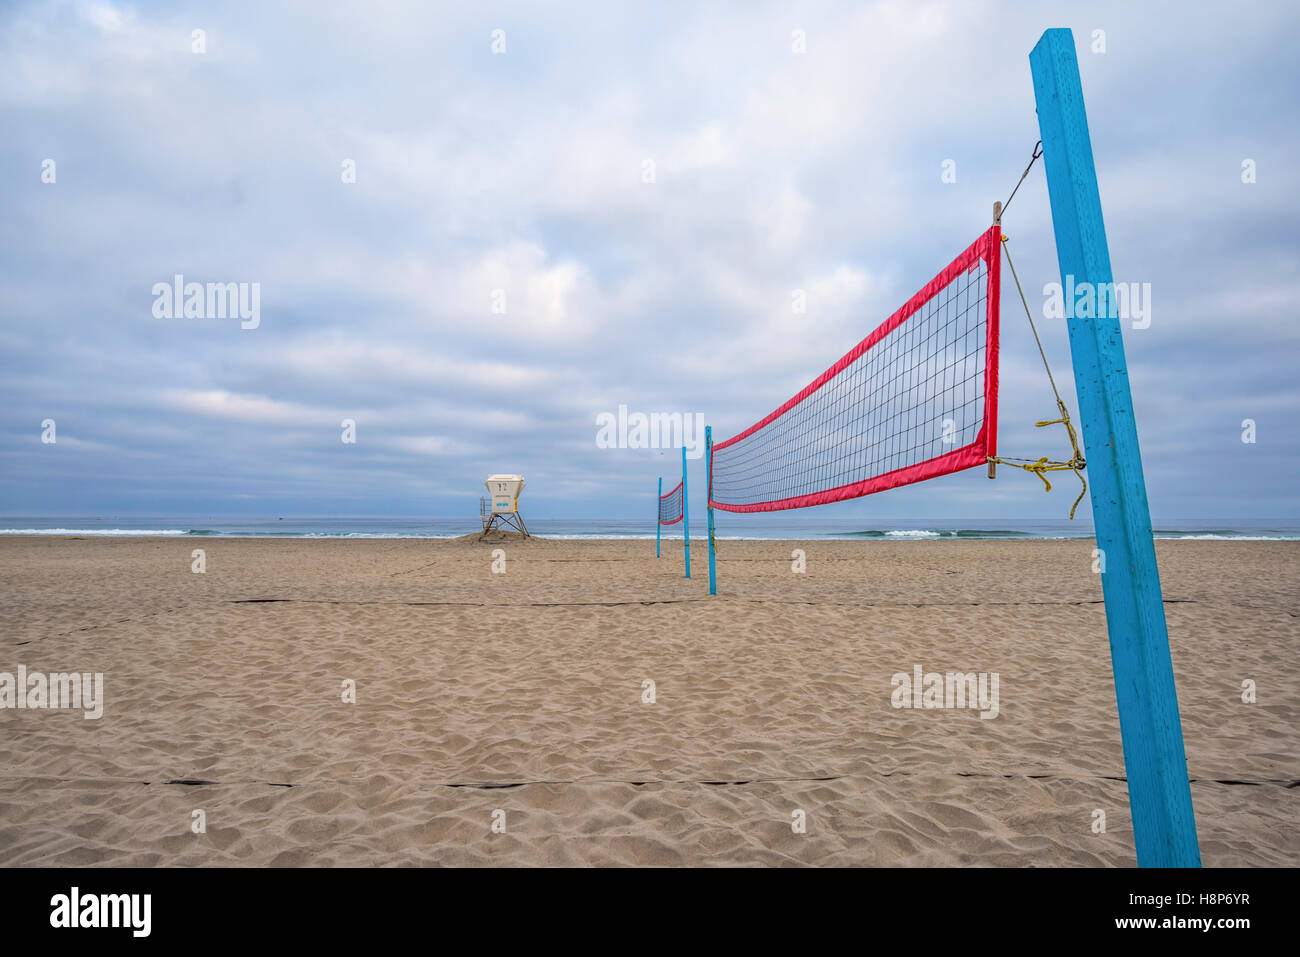 Beach Volleyball Net Lifeguard Tower Cloudy Morning Mission Beach Stock Photo Alamy